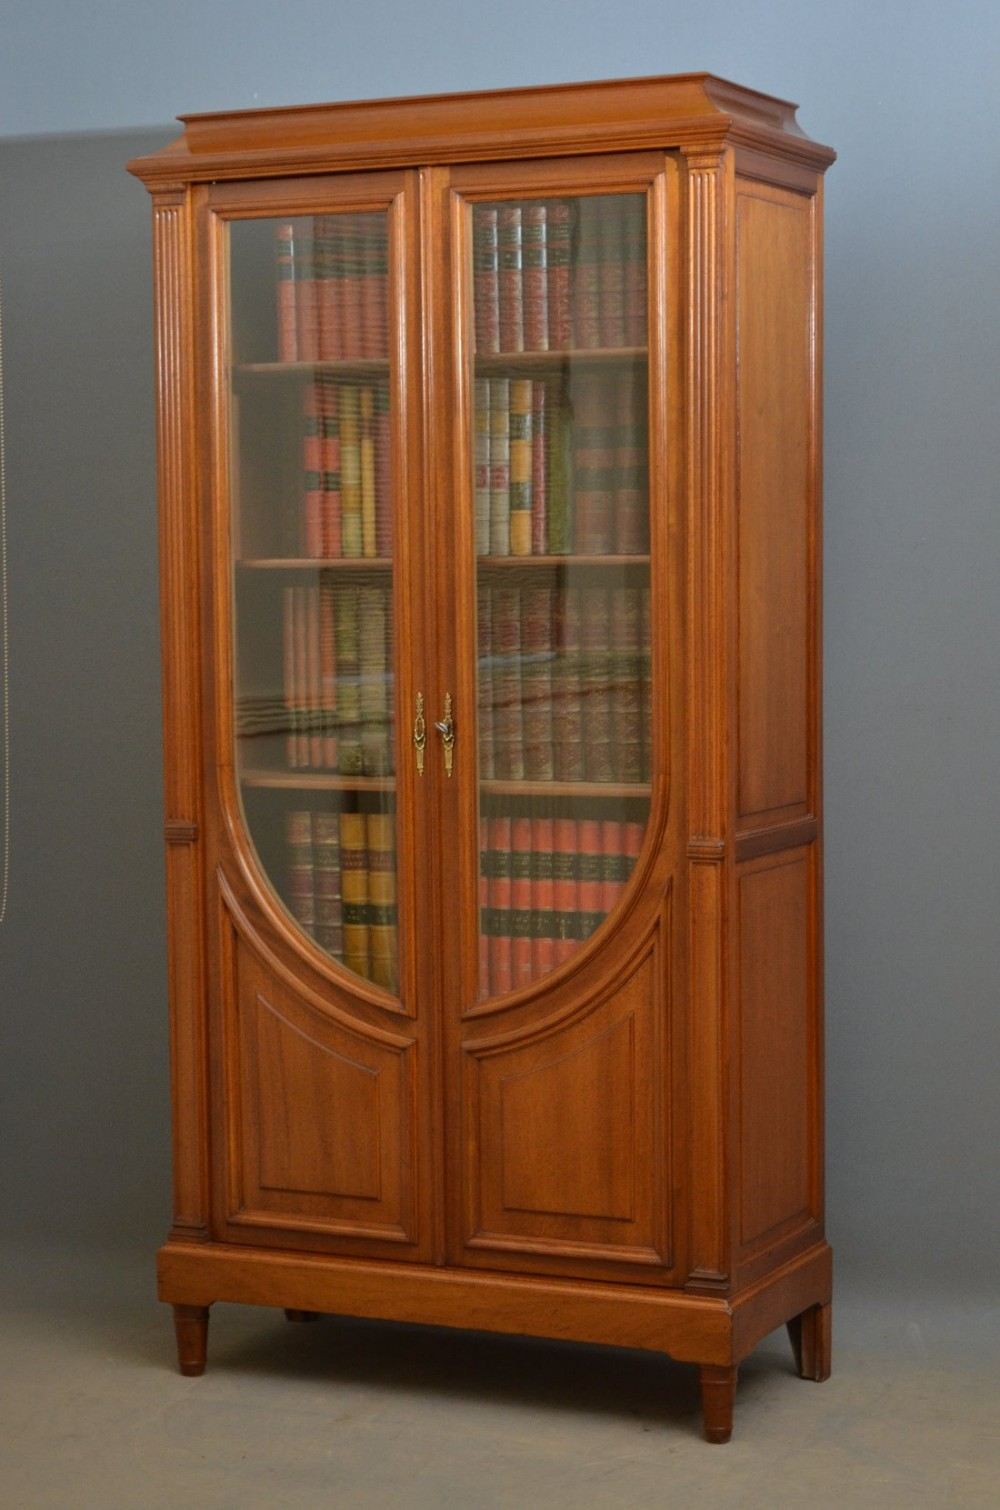 French Art Nouveau Walnut Bookcase Display Cabinet